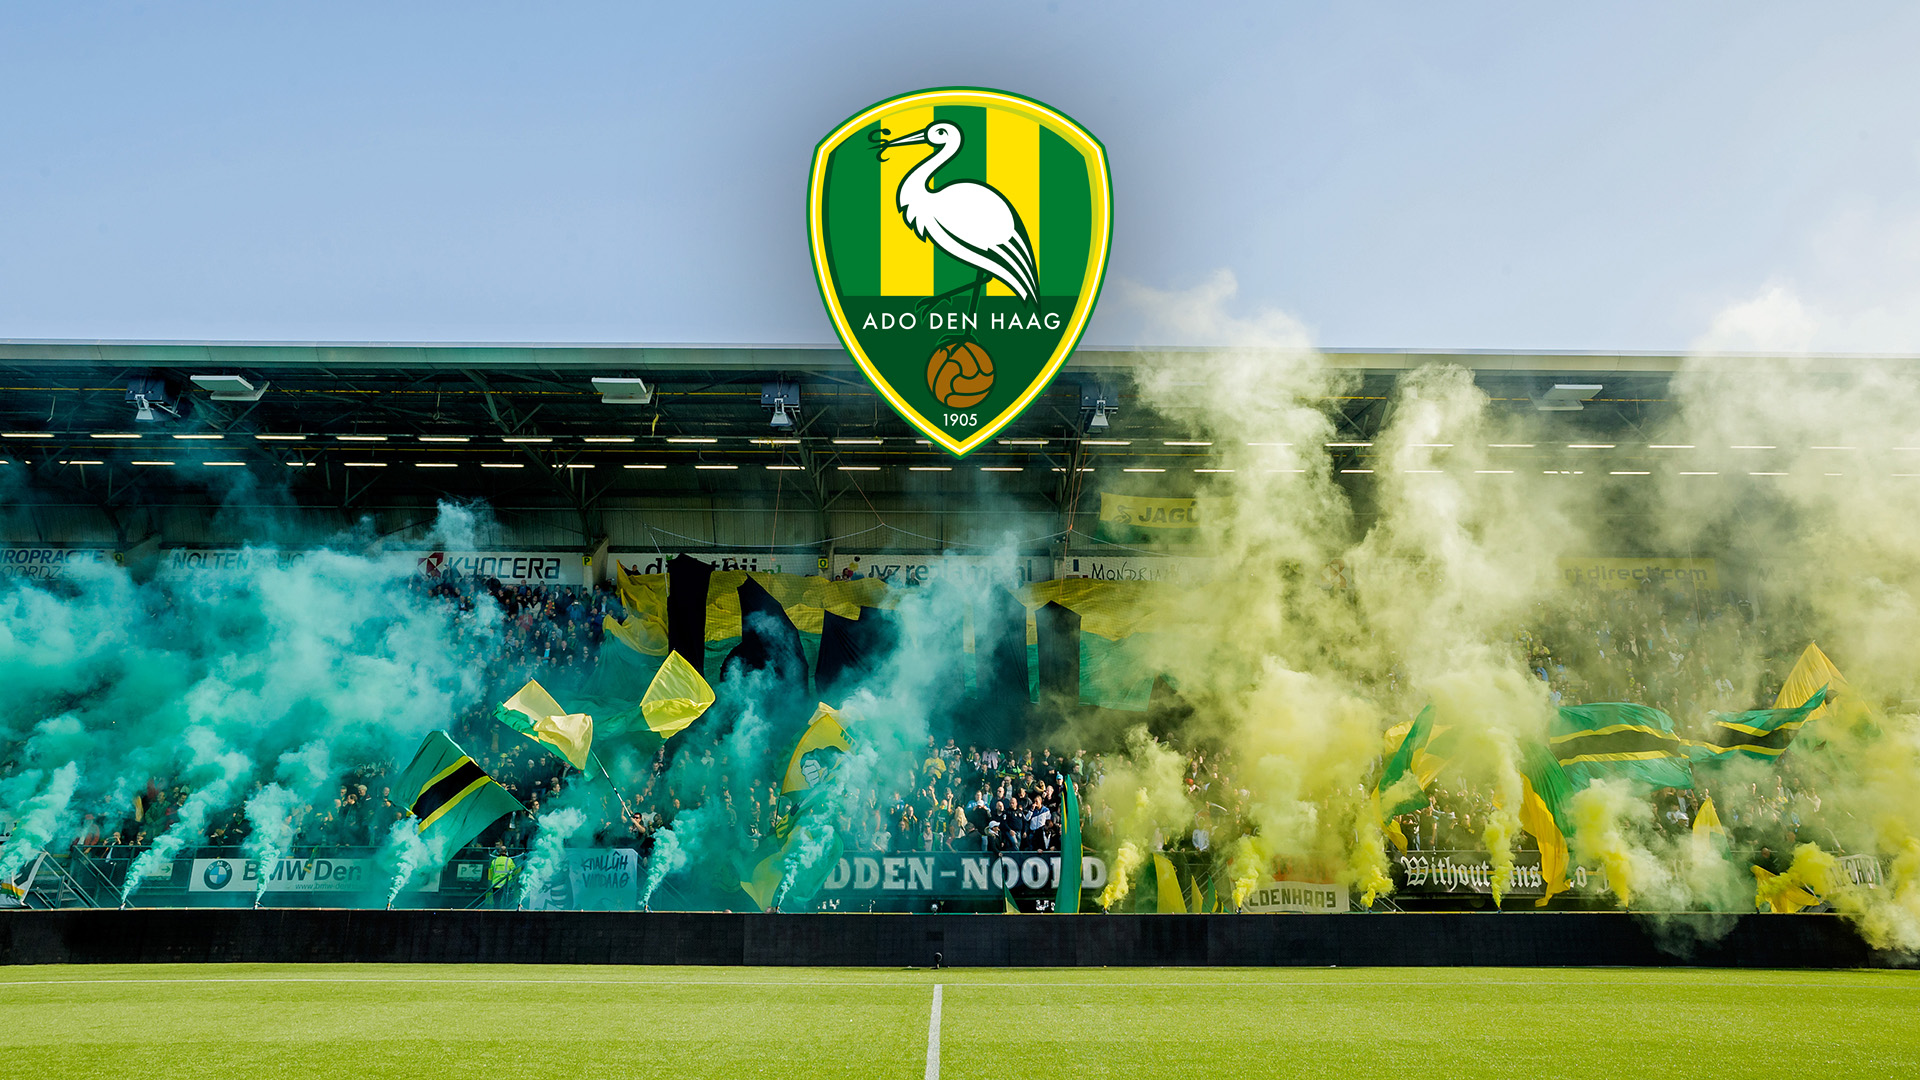 Wallpapers Ado Den Haag